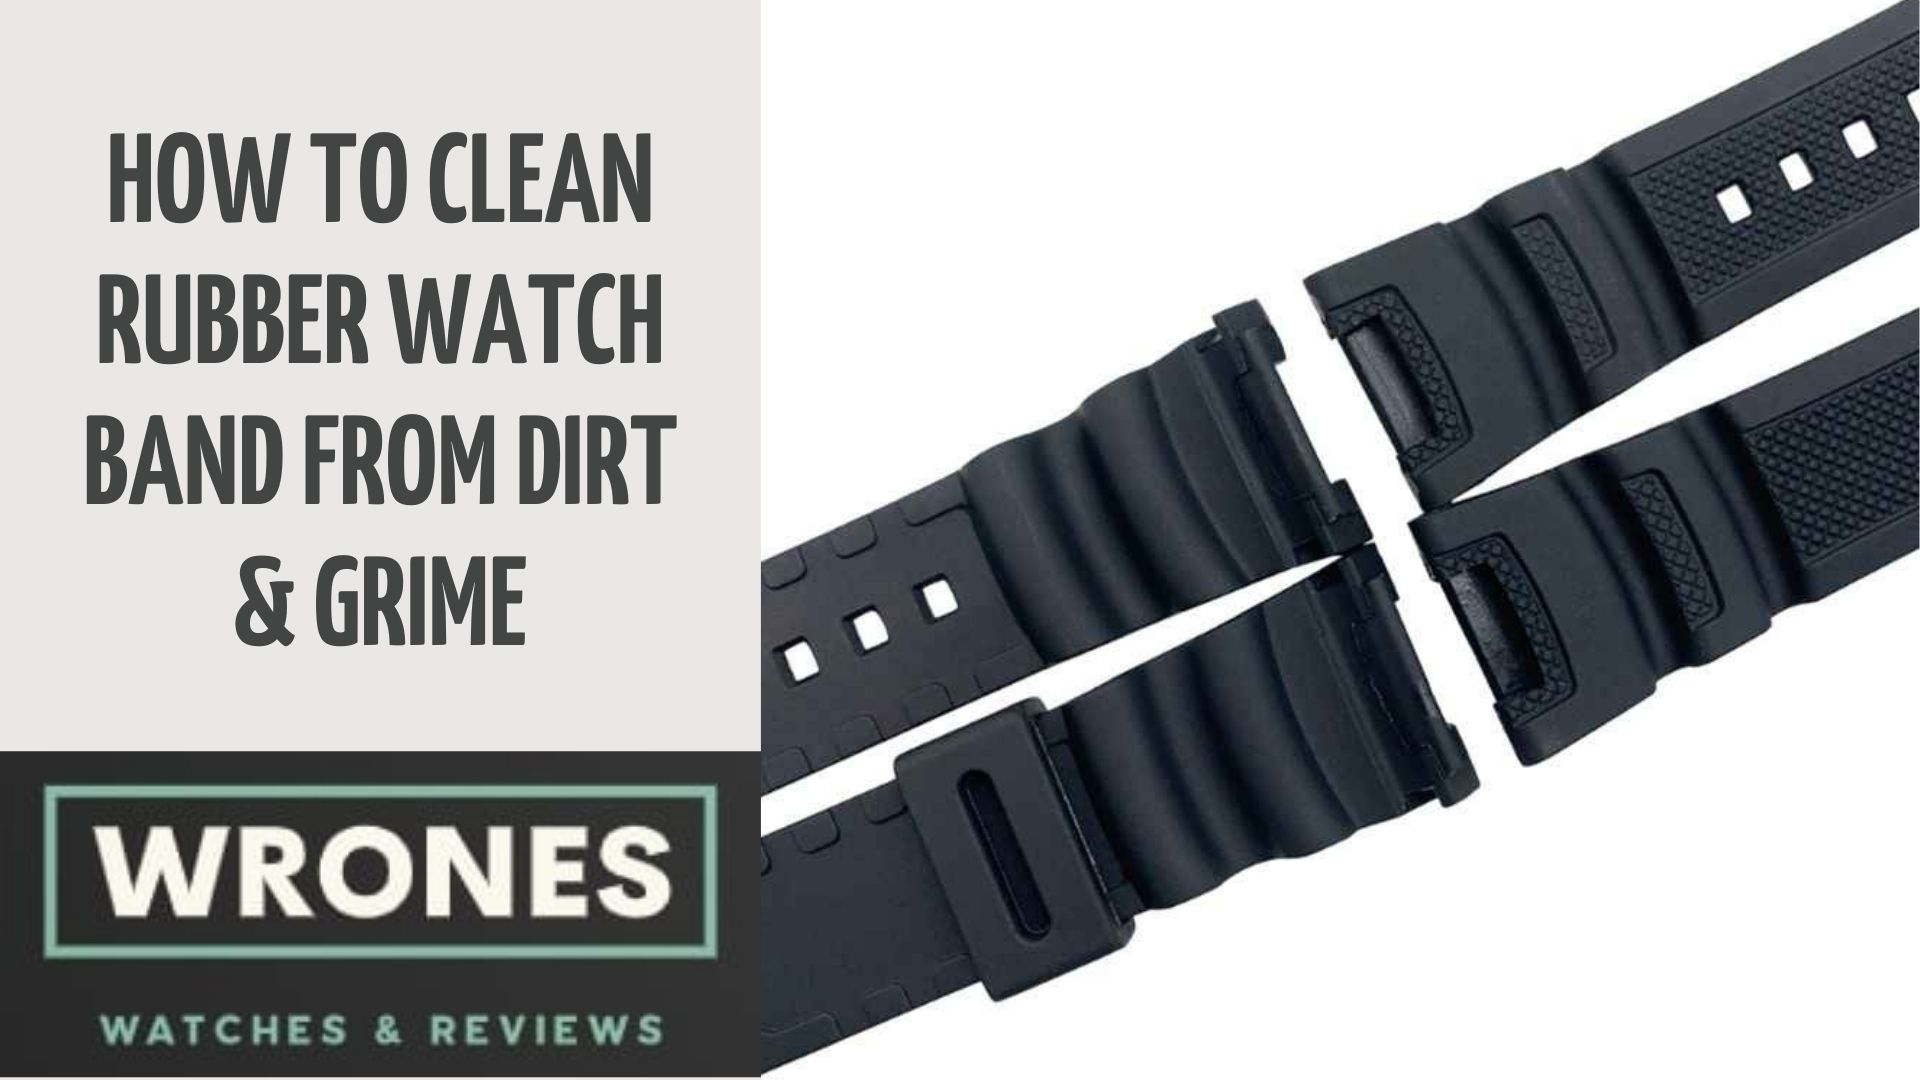 How To Clean Rubber Watch Band From Dirt Grime wrones